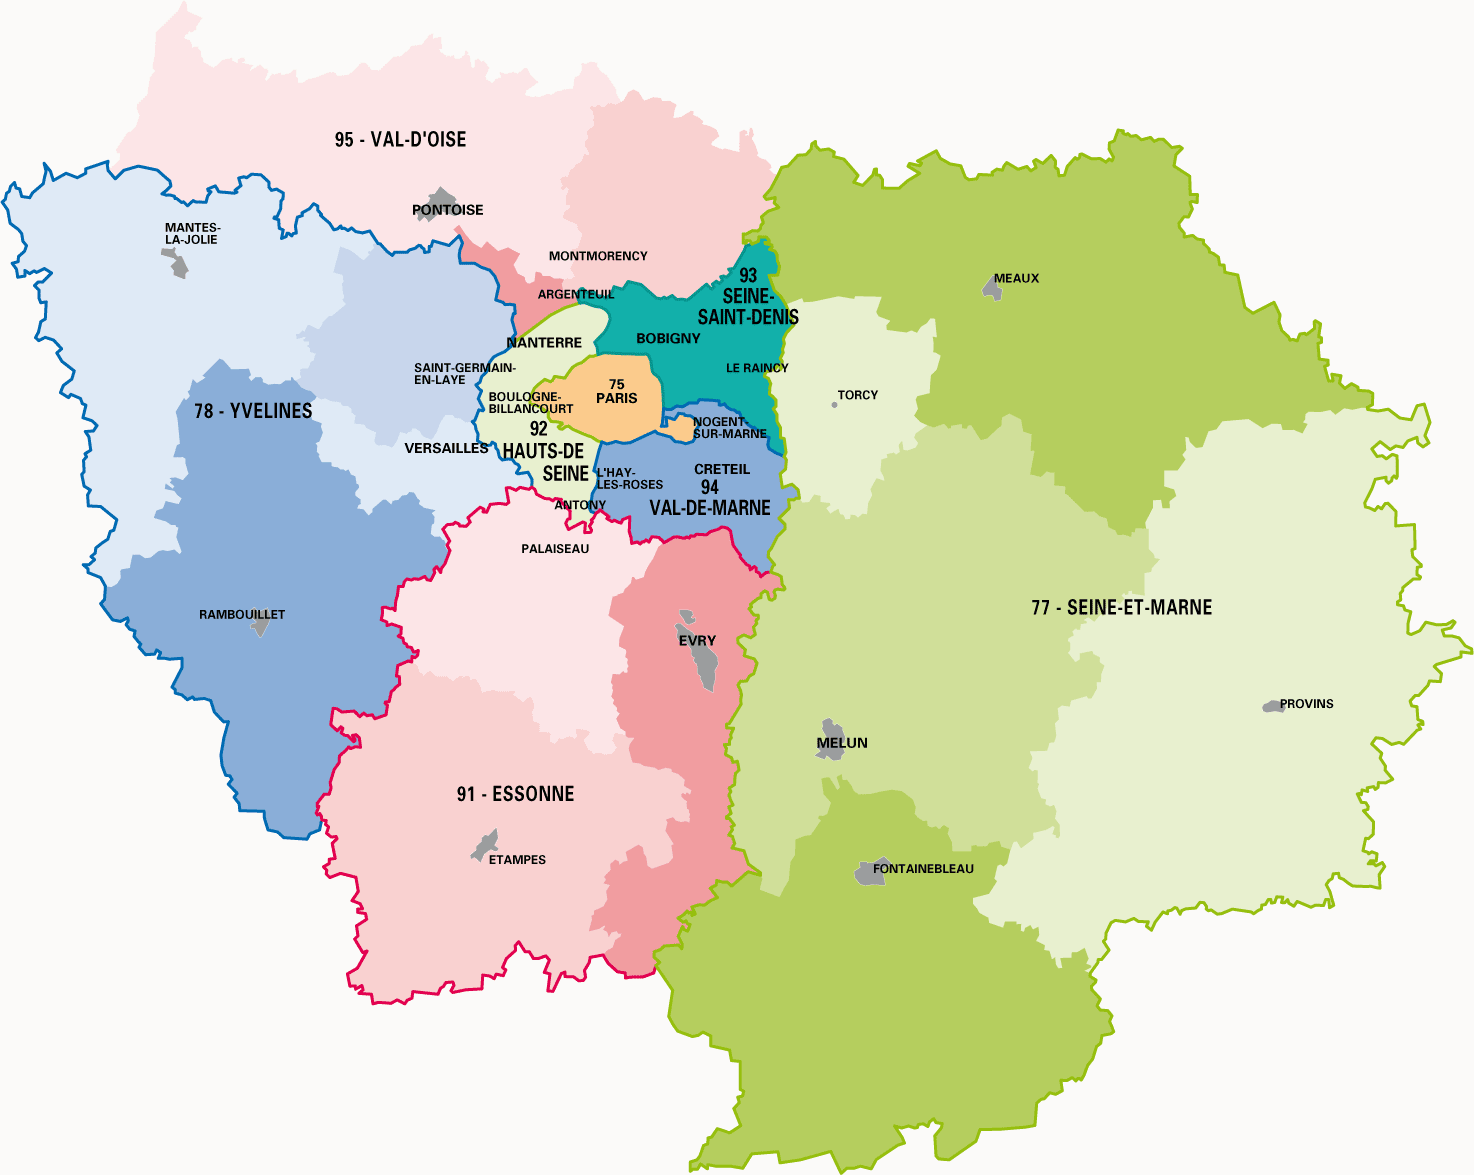 carte de france departement La carte des départements de la région Ile de France